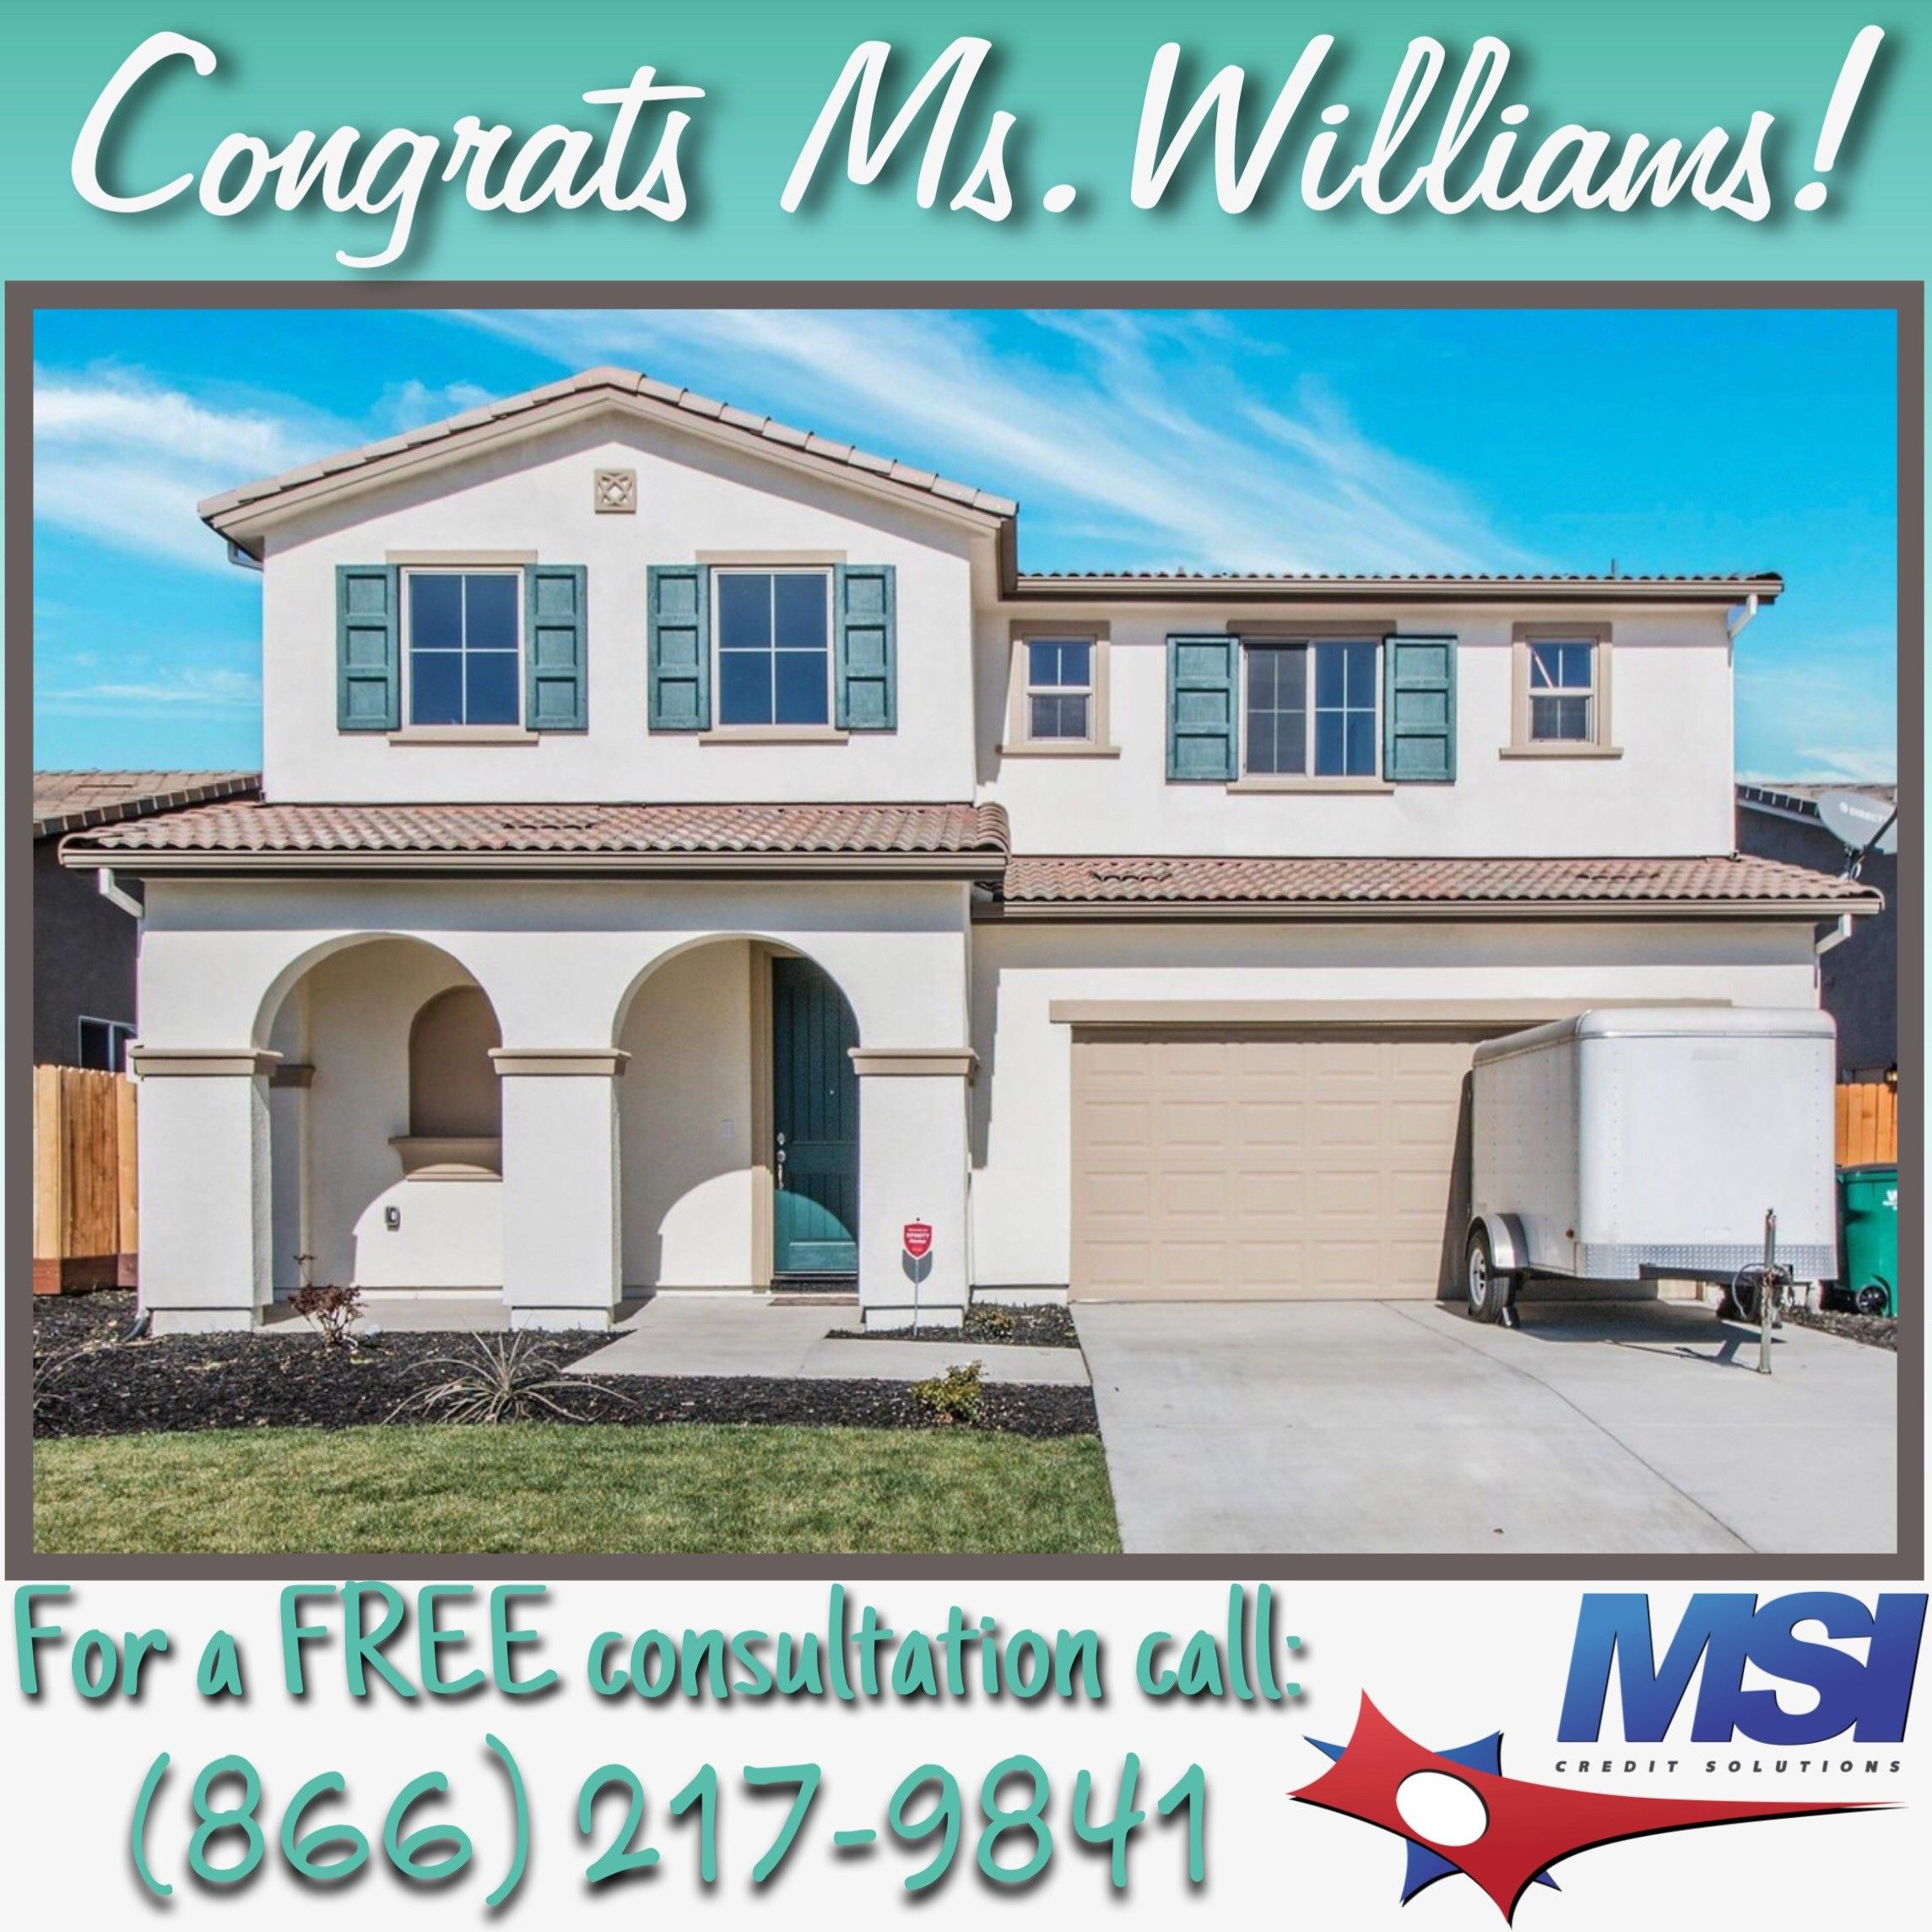 Congratulations On Reaching Your Goal Of Home Ownership Ms